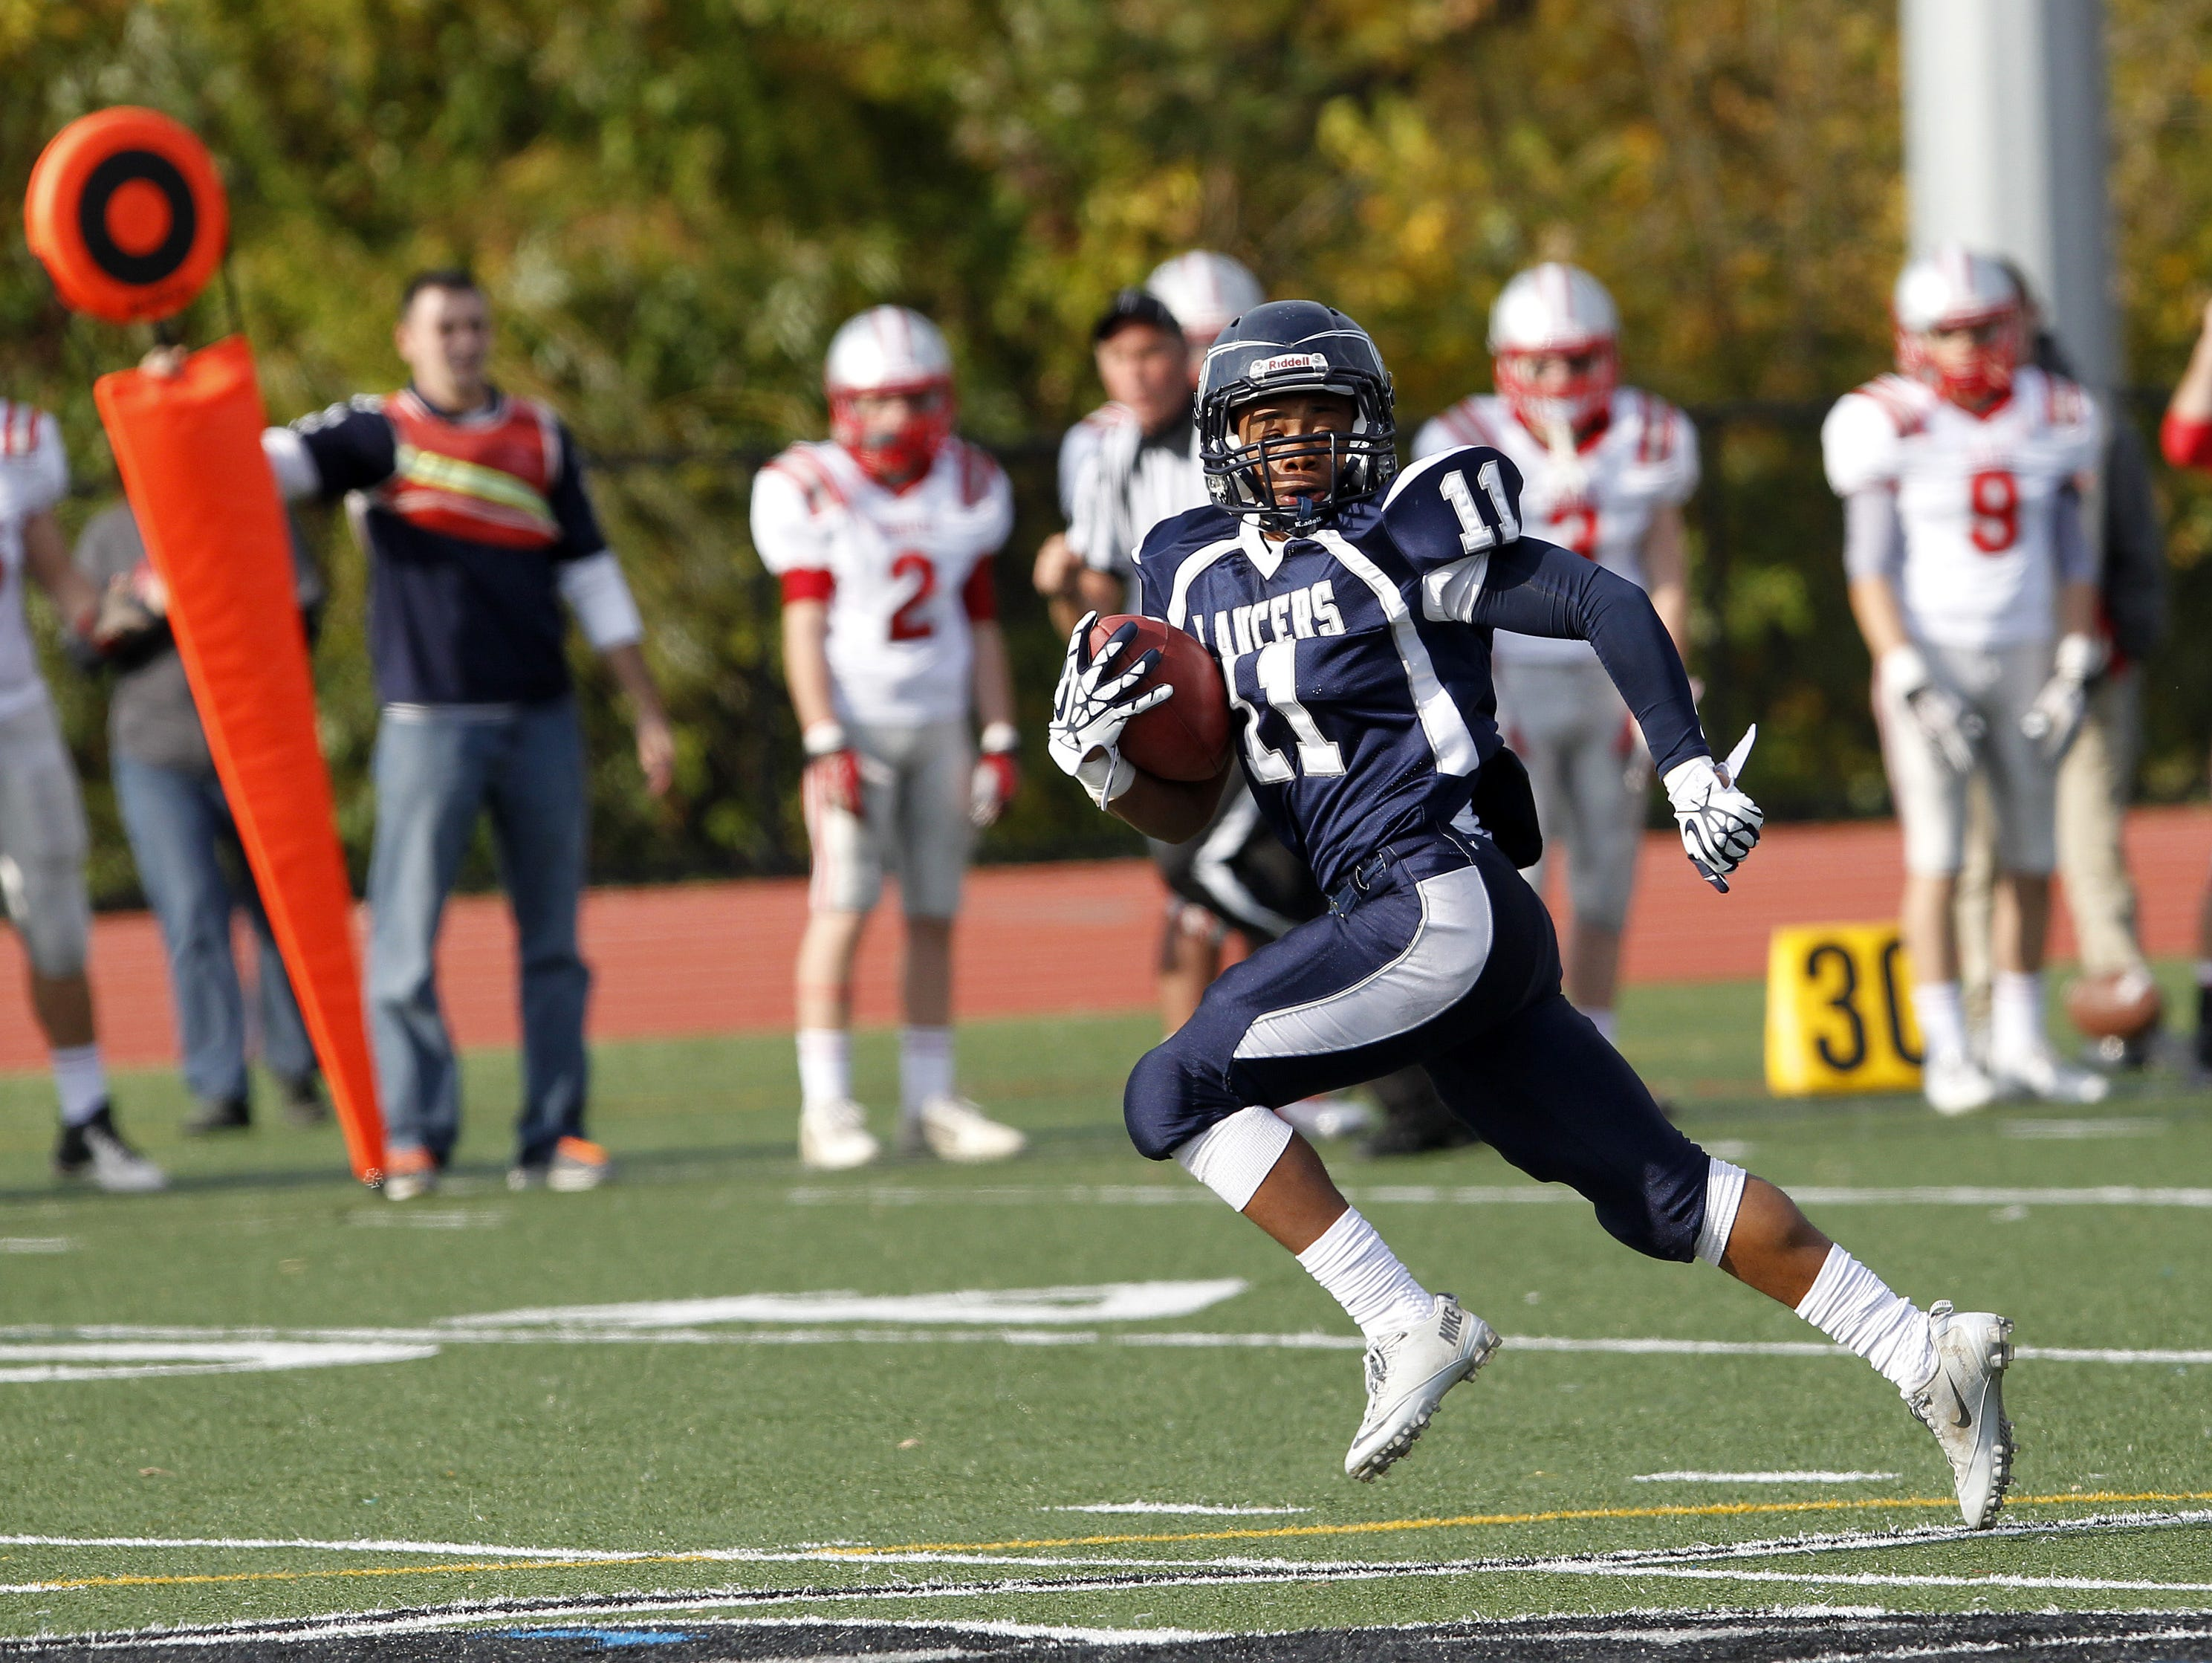 East Irondequoit Eastridge rising junior CJ Turner, shown during a game in 2013, received his first offer to play college football on scholarship.